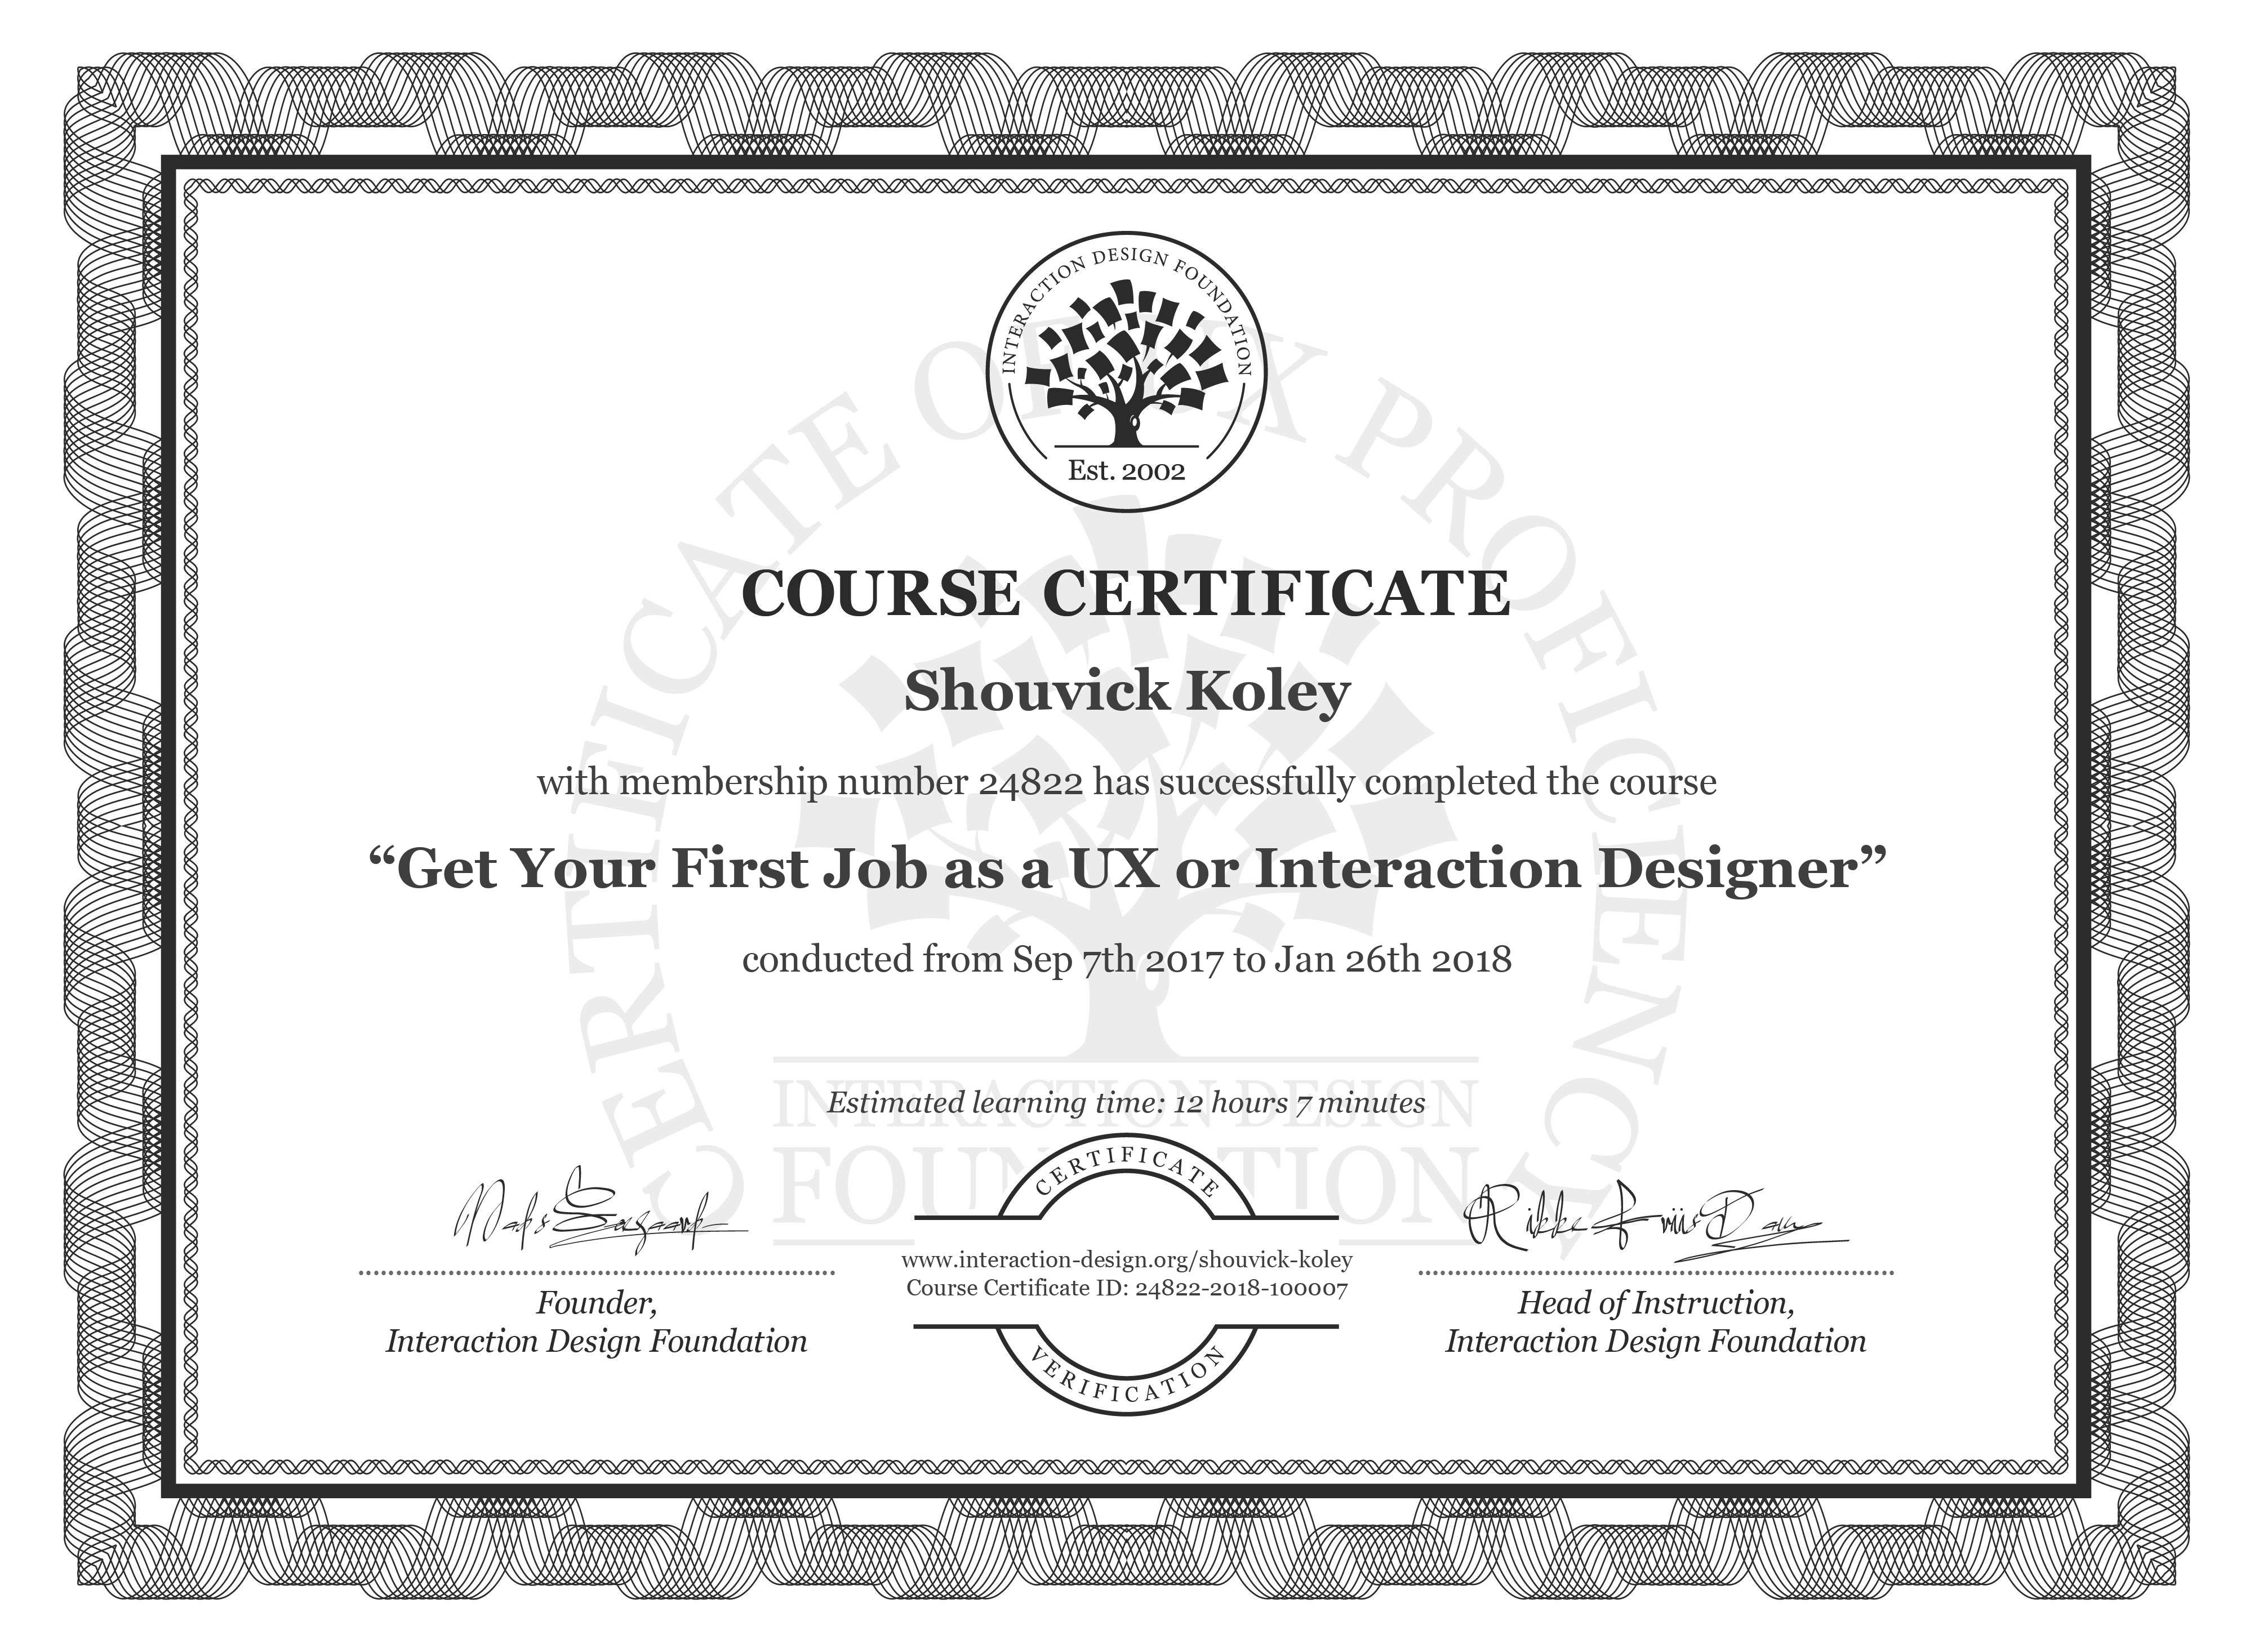 Shouvick Koley's Course Certificate: Get Your First Job as a UX or Interaction Designer